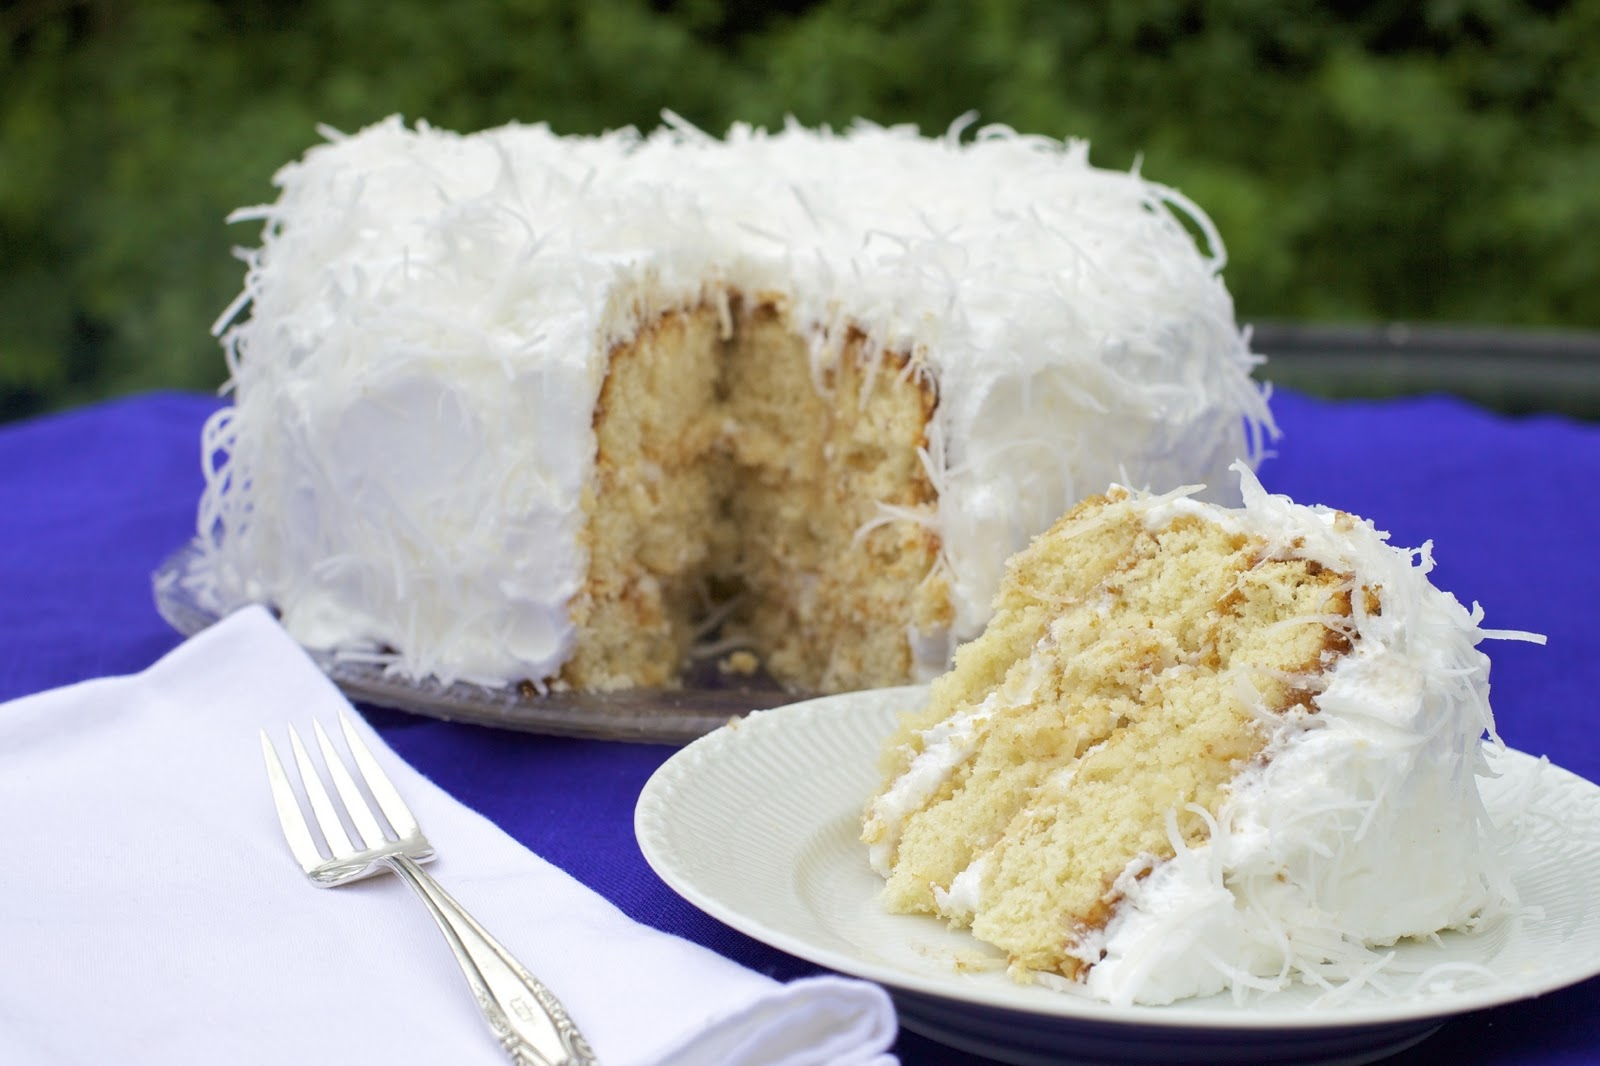 Sprigs of Rosemary: Ina's Coconut Cake Topped the Birthday Surprise!